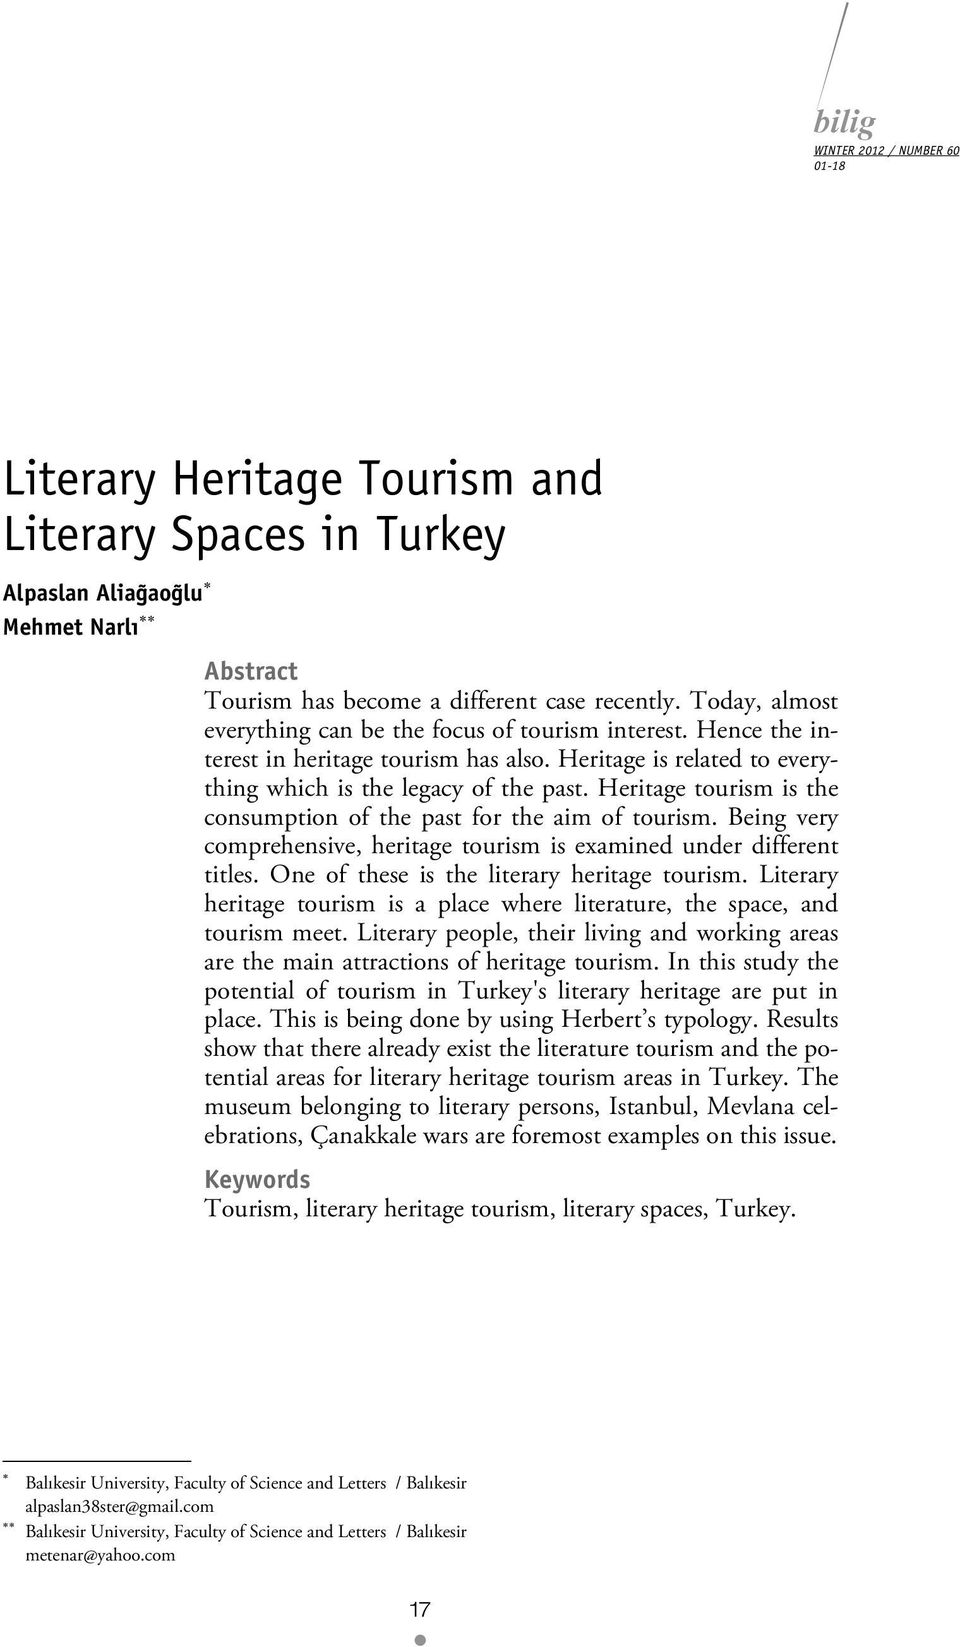 Heritage tourism is the consumption of the past for the aim of tourism. Being very comprehensive, heritage tourism is examined under different titles. One of these is the literary heritage tourism.